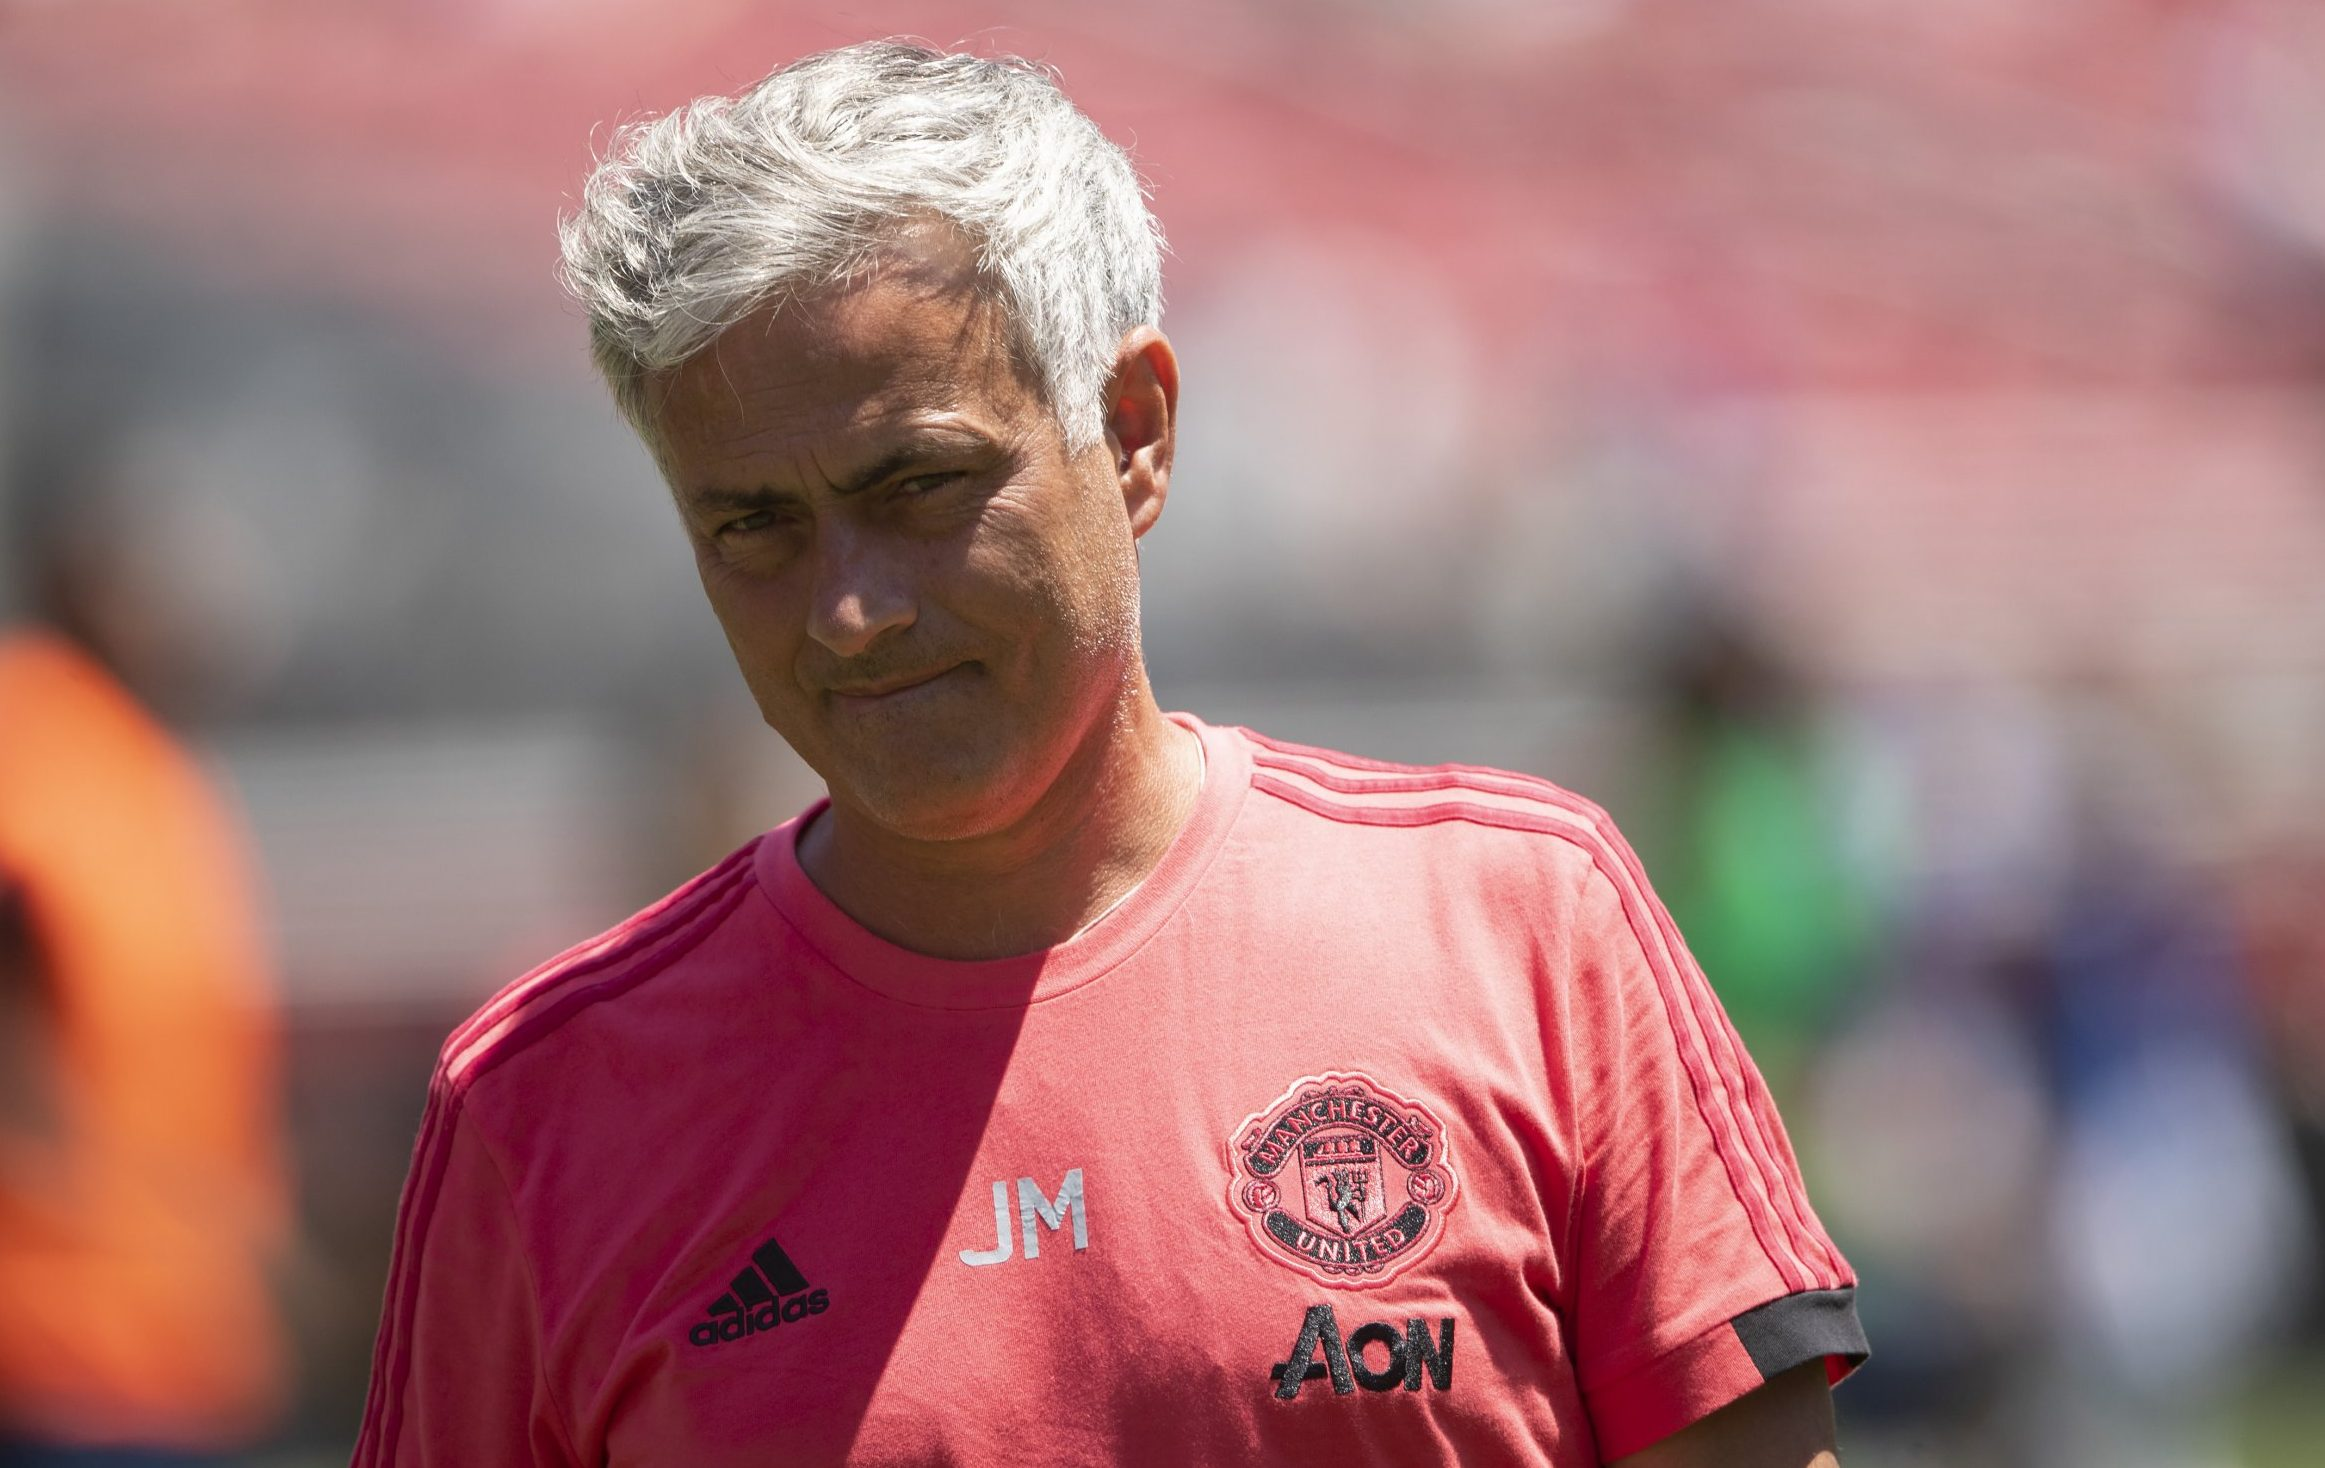 SANTA CLARA, CA - JULY 22: Jose Mourinho the head coach / manager of Manchester United during the Pre-Season match between Manchester United v San Jose Earthquakes at Levi's Stadium on July 22, 2018 in Santa Clara, California. (Photo by Matthew Ashton - AMA/Getty Images)